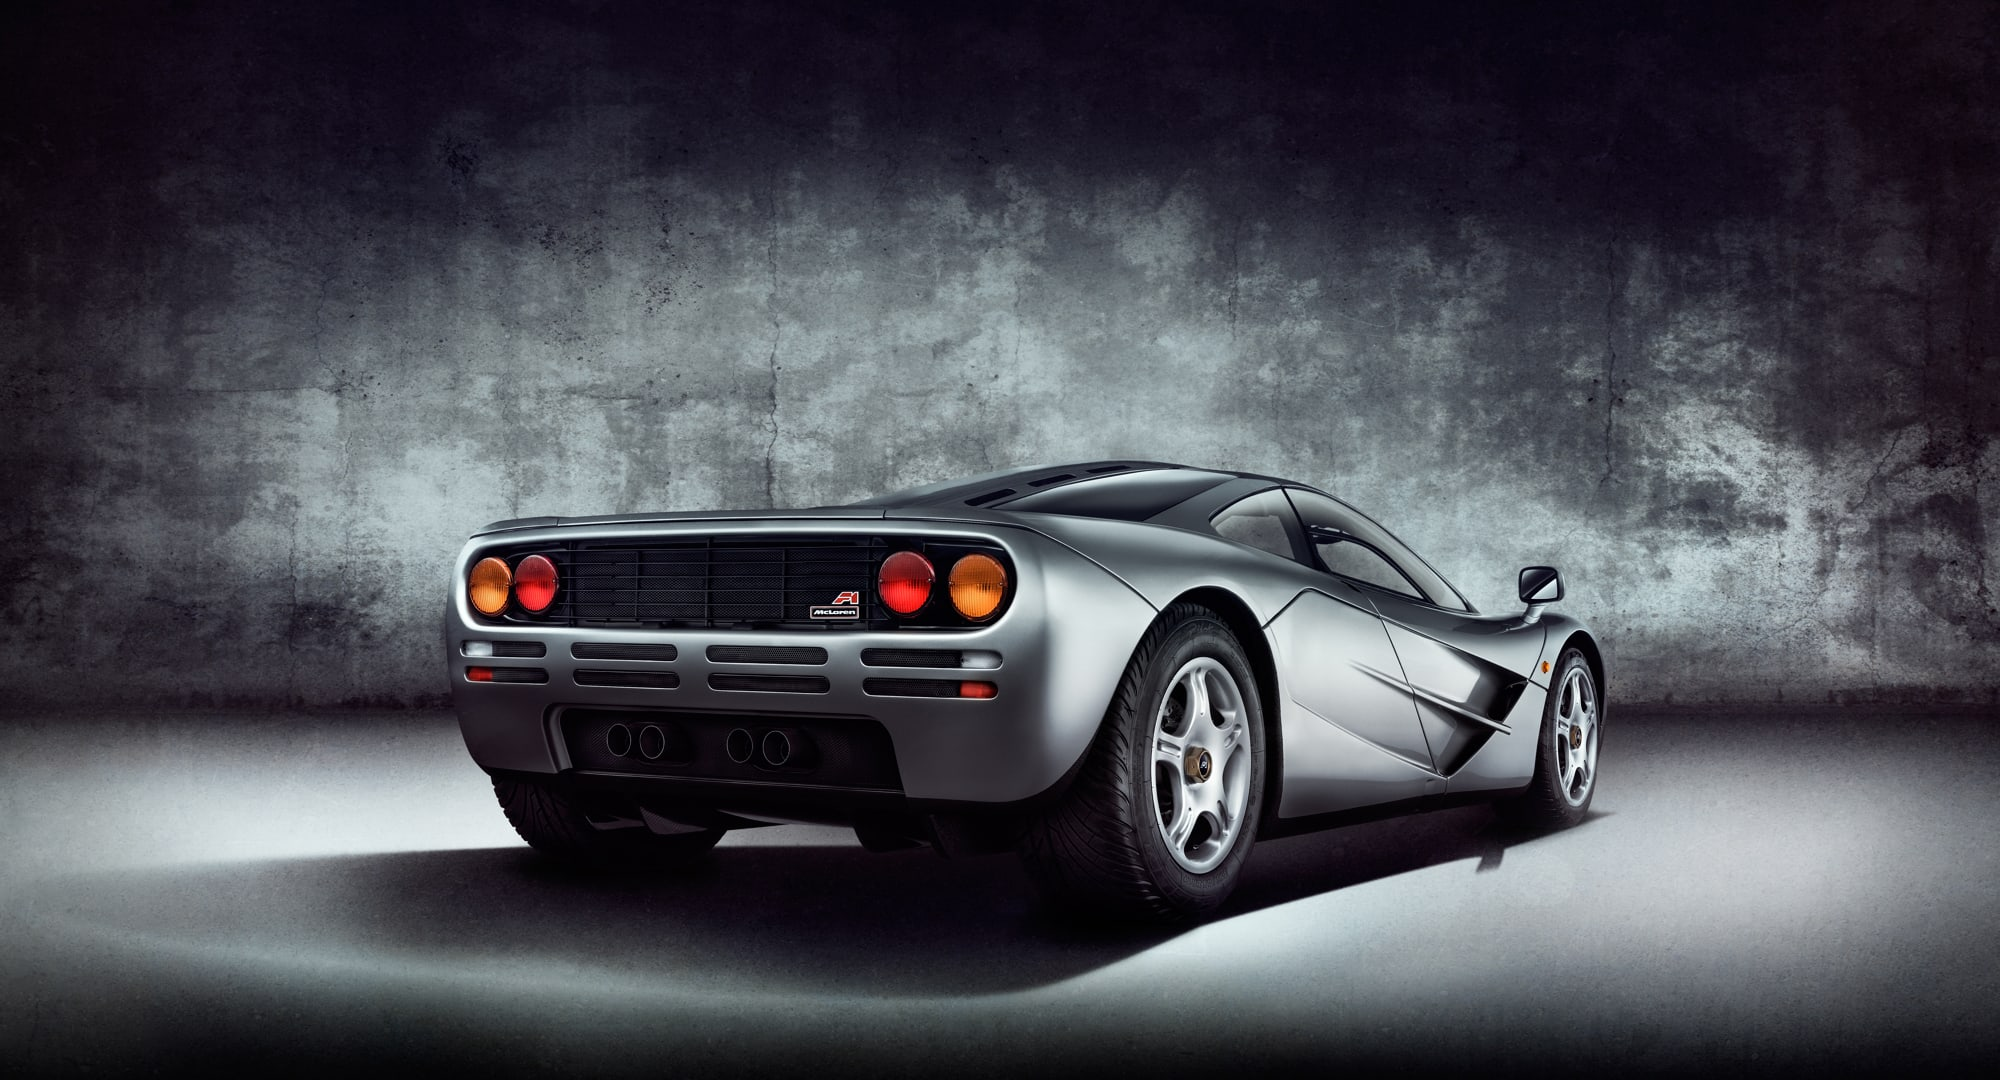 McLaren F1 photographed in studio by Automotive Photographer Blair Bunting